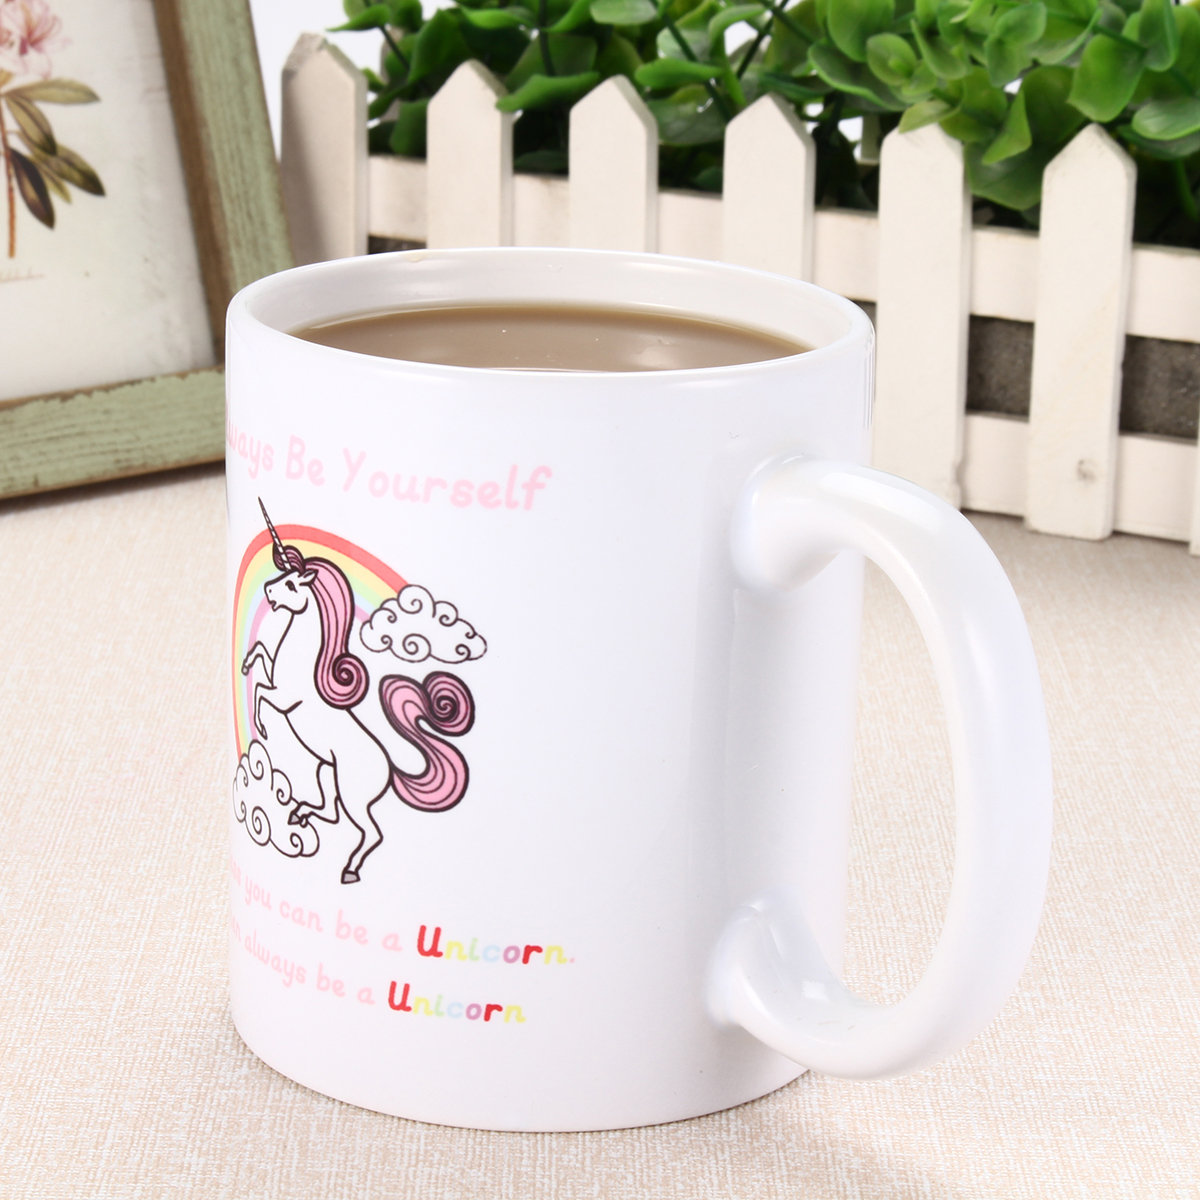 350ml Novelty Funny Unicorn Coffee Mug Always Be Yourself Home Office Cup Gift